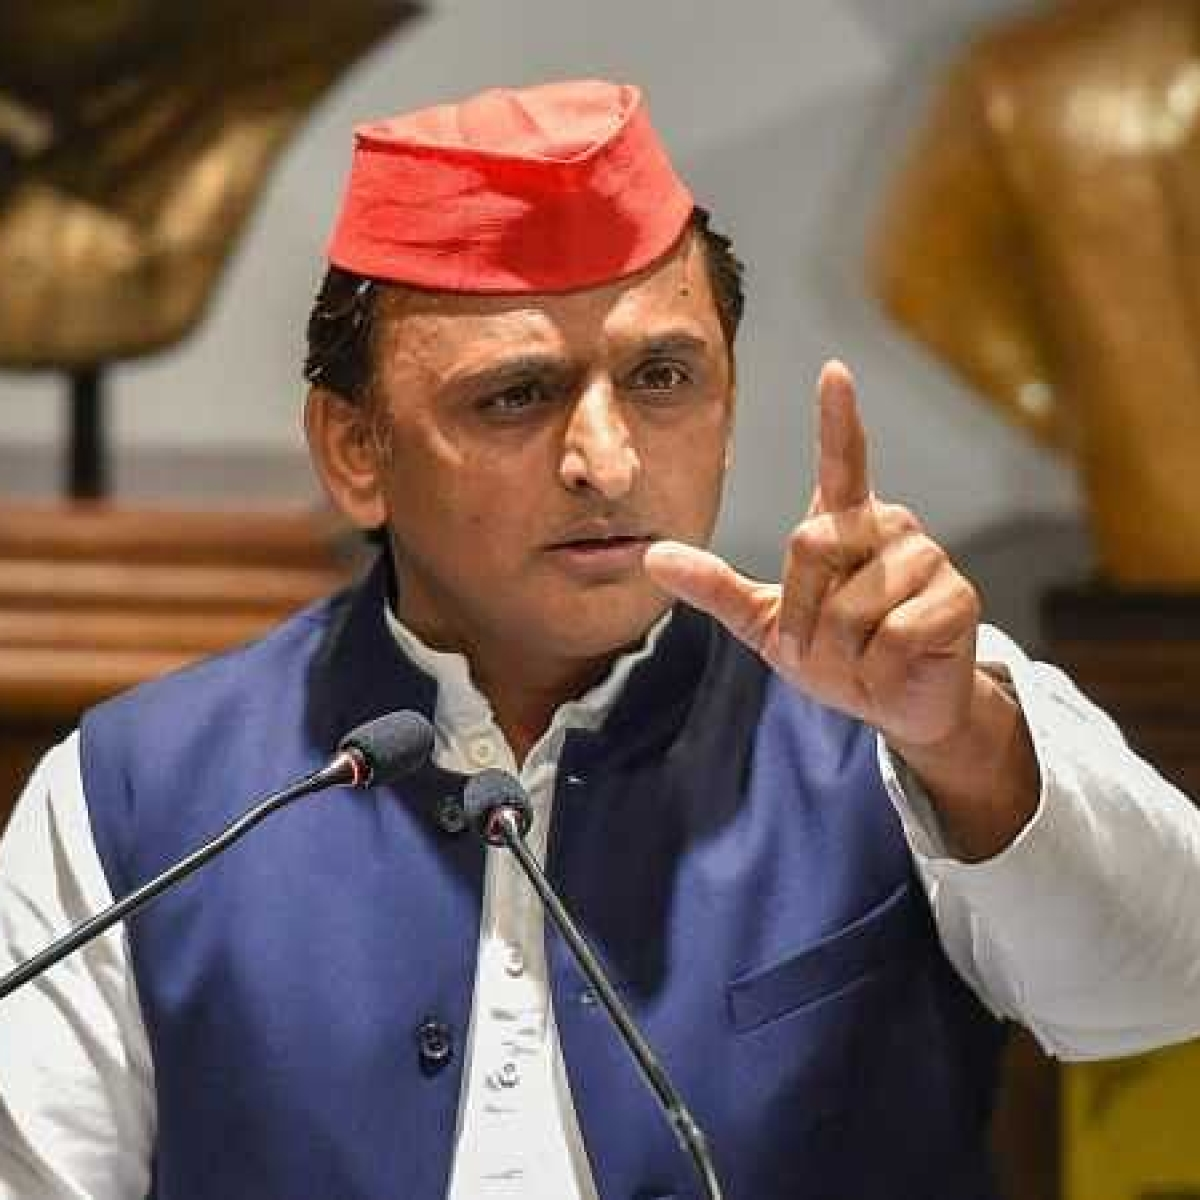 'How can I trust BJP's vaccine?': Akhilesh Yadav refuses to take COVID-19 shot, says will wait for SP regime in UP